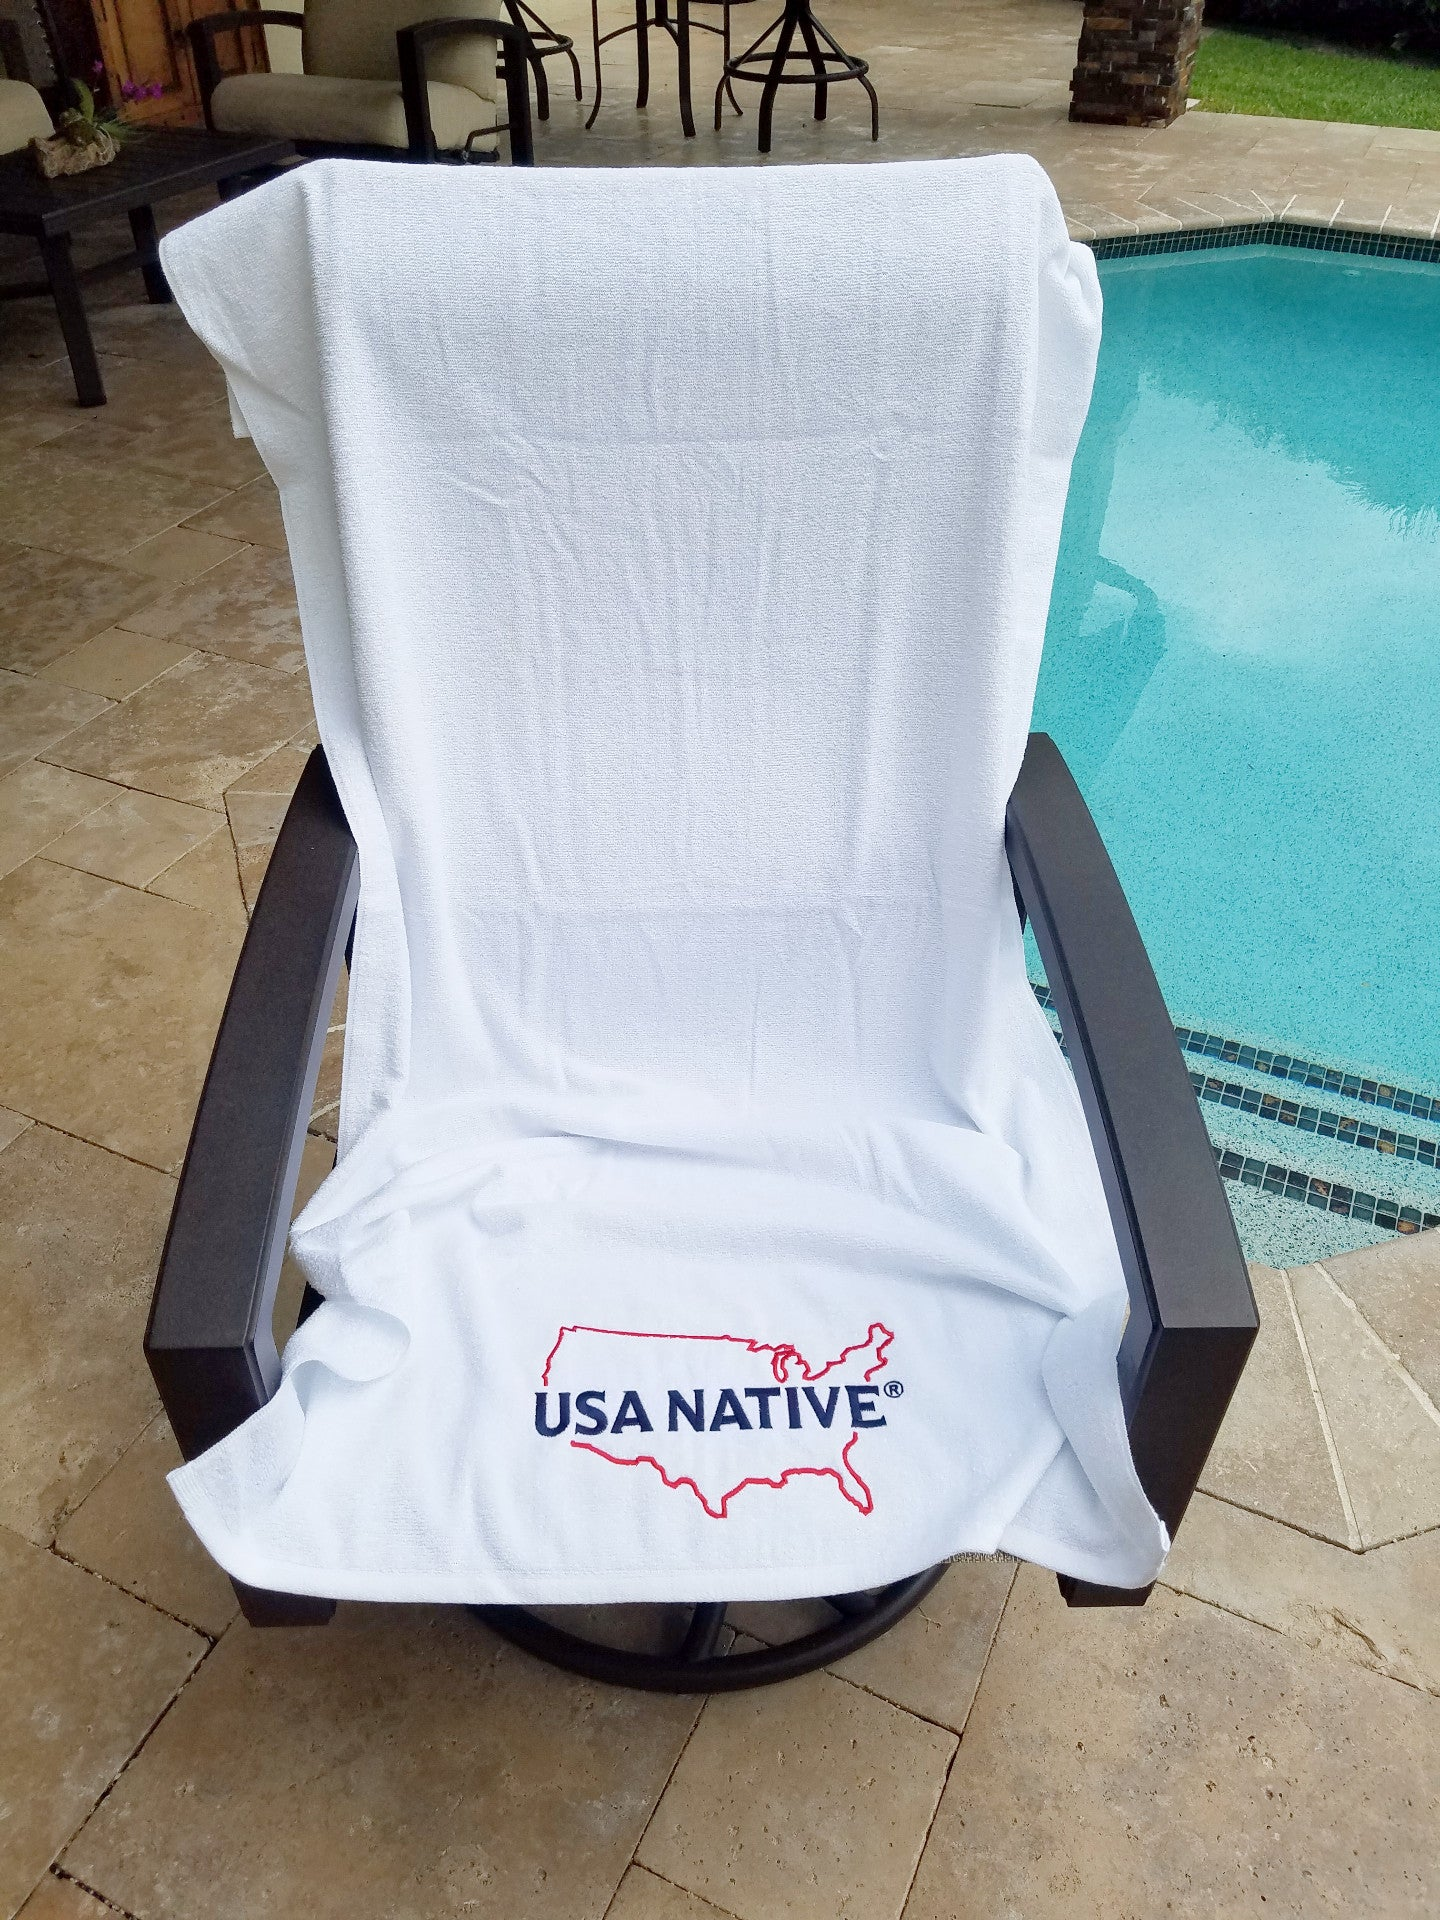 USA Native White Beach Towel